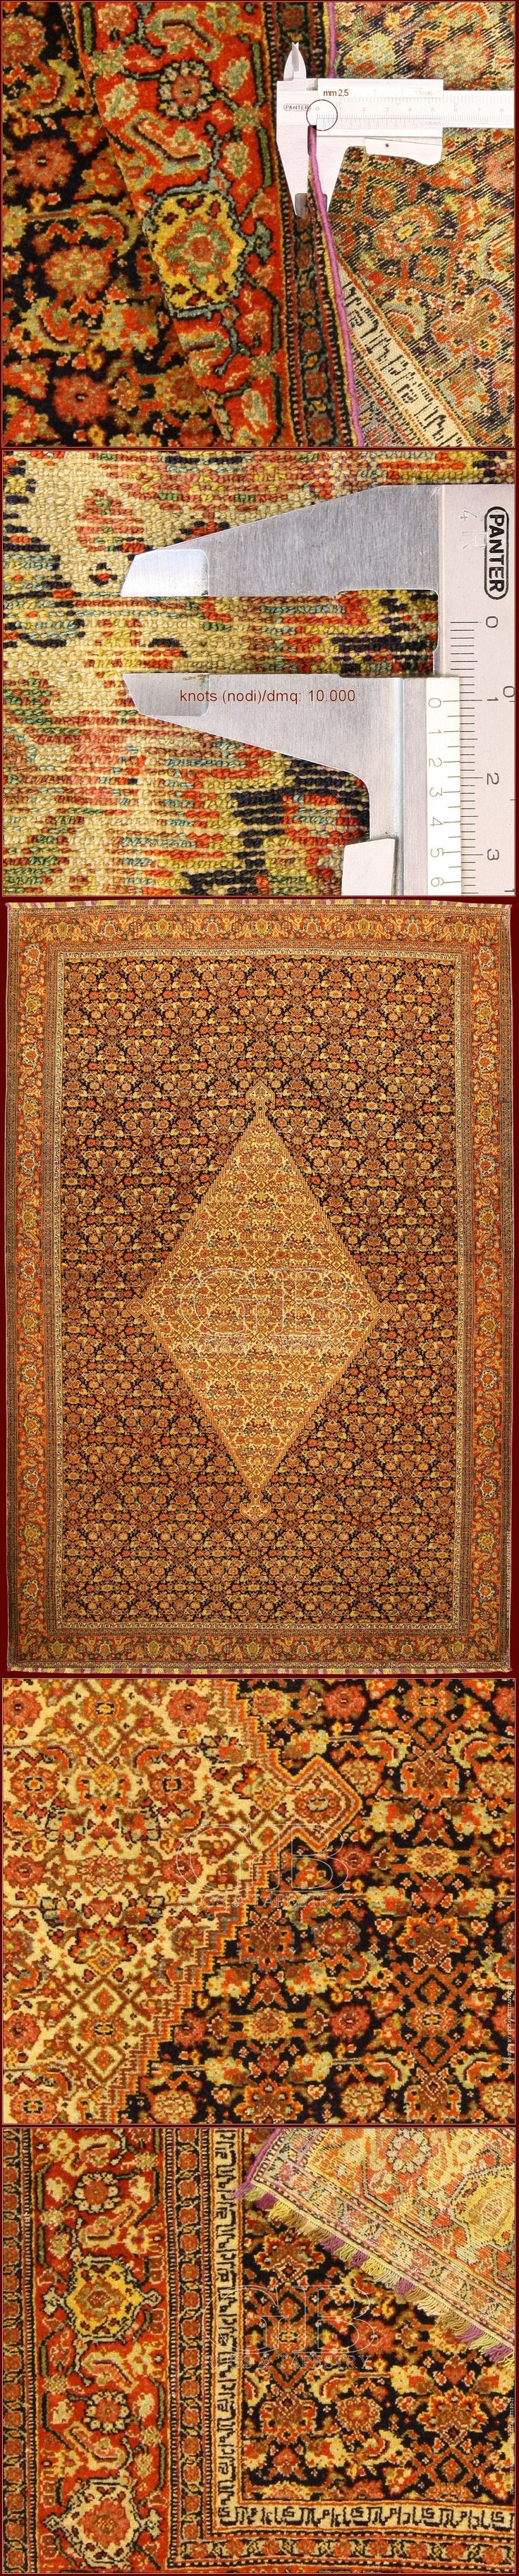 VERY RARE AND BEATIFUL ANTIQUE SEVEN COLOR SILK WARP SENNEH RUG